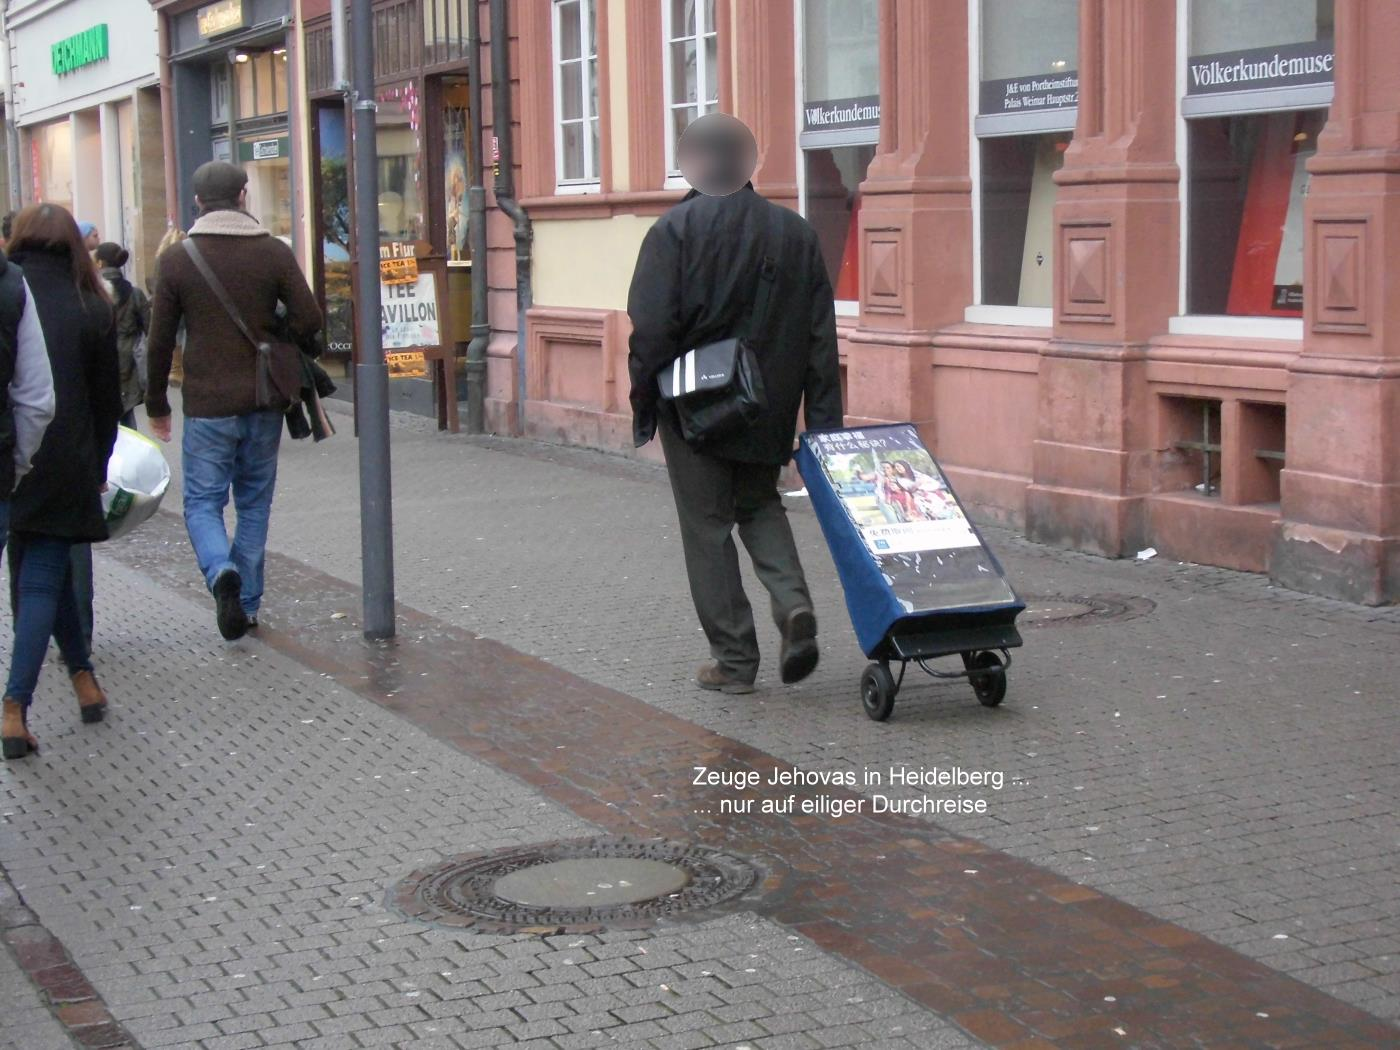 Jehovah's Witness in Heidelberg Fleeing from Christmas